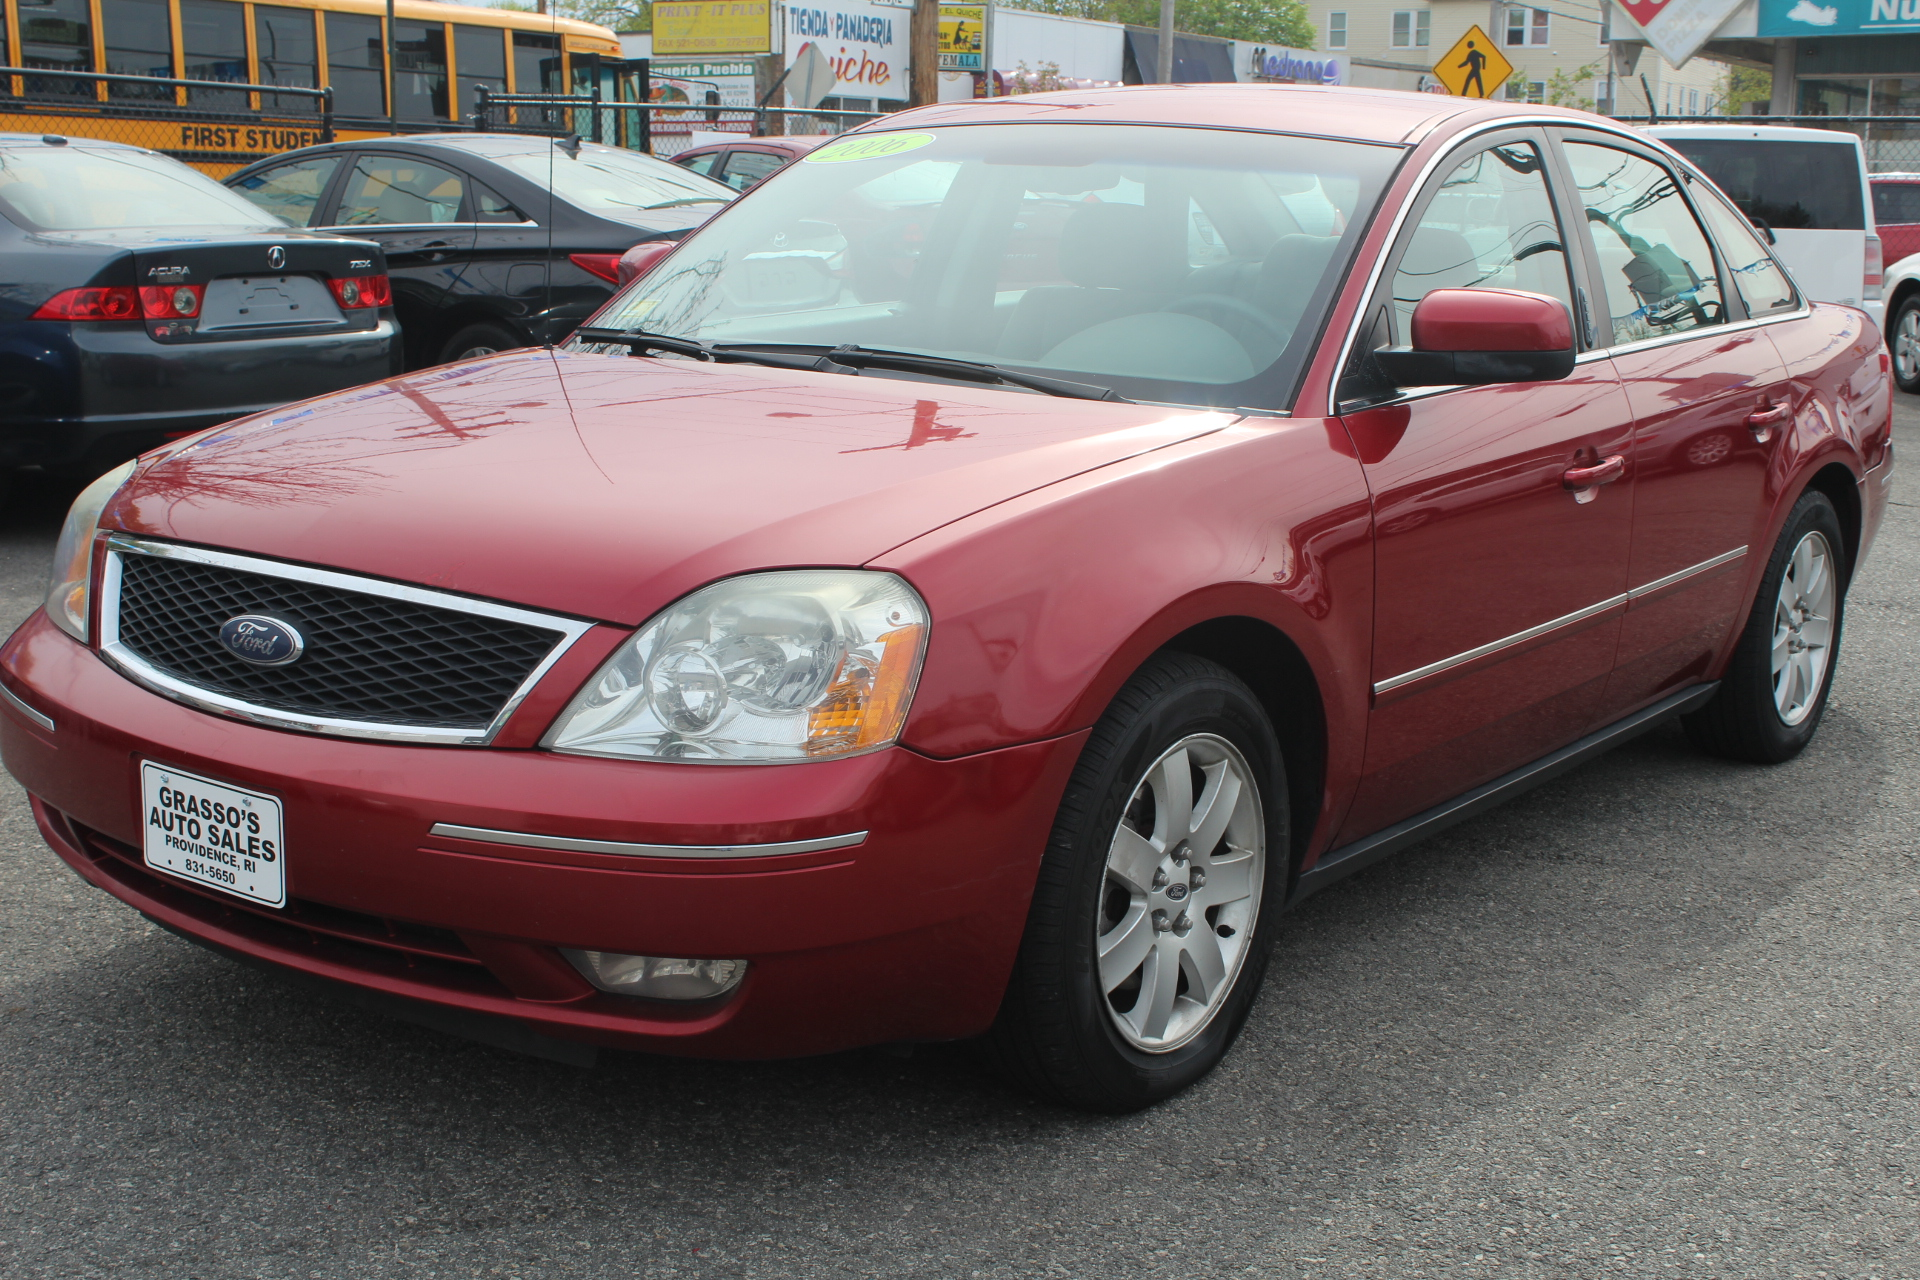 2006 Ford Five Hundred 4dr Sdn SEL NON SMOKER  REMOTE STARTER  40 DETAILED SERVICE RECORDS  COM